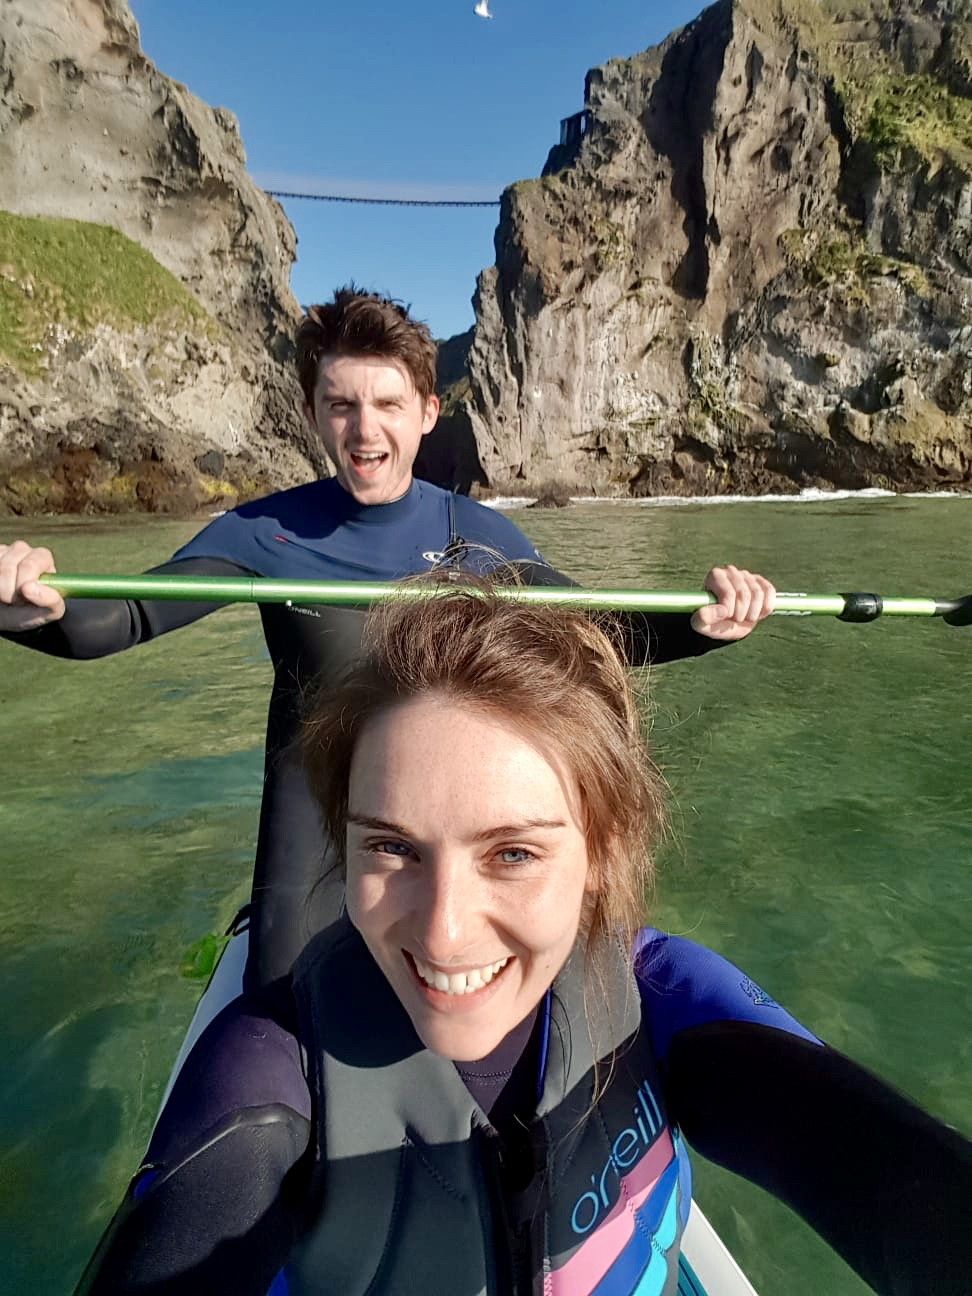 carrick-a-rede-rope-bridge-sup-paddle-board-causeway-coast (10).jpeg